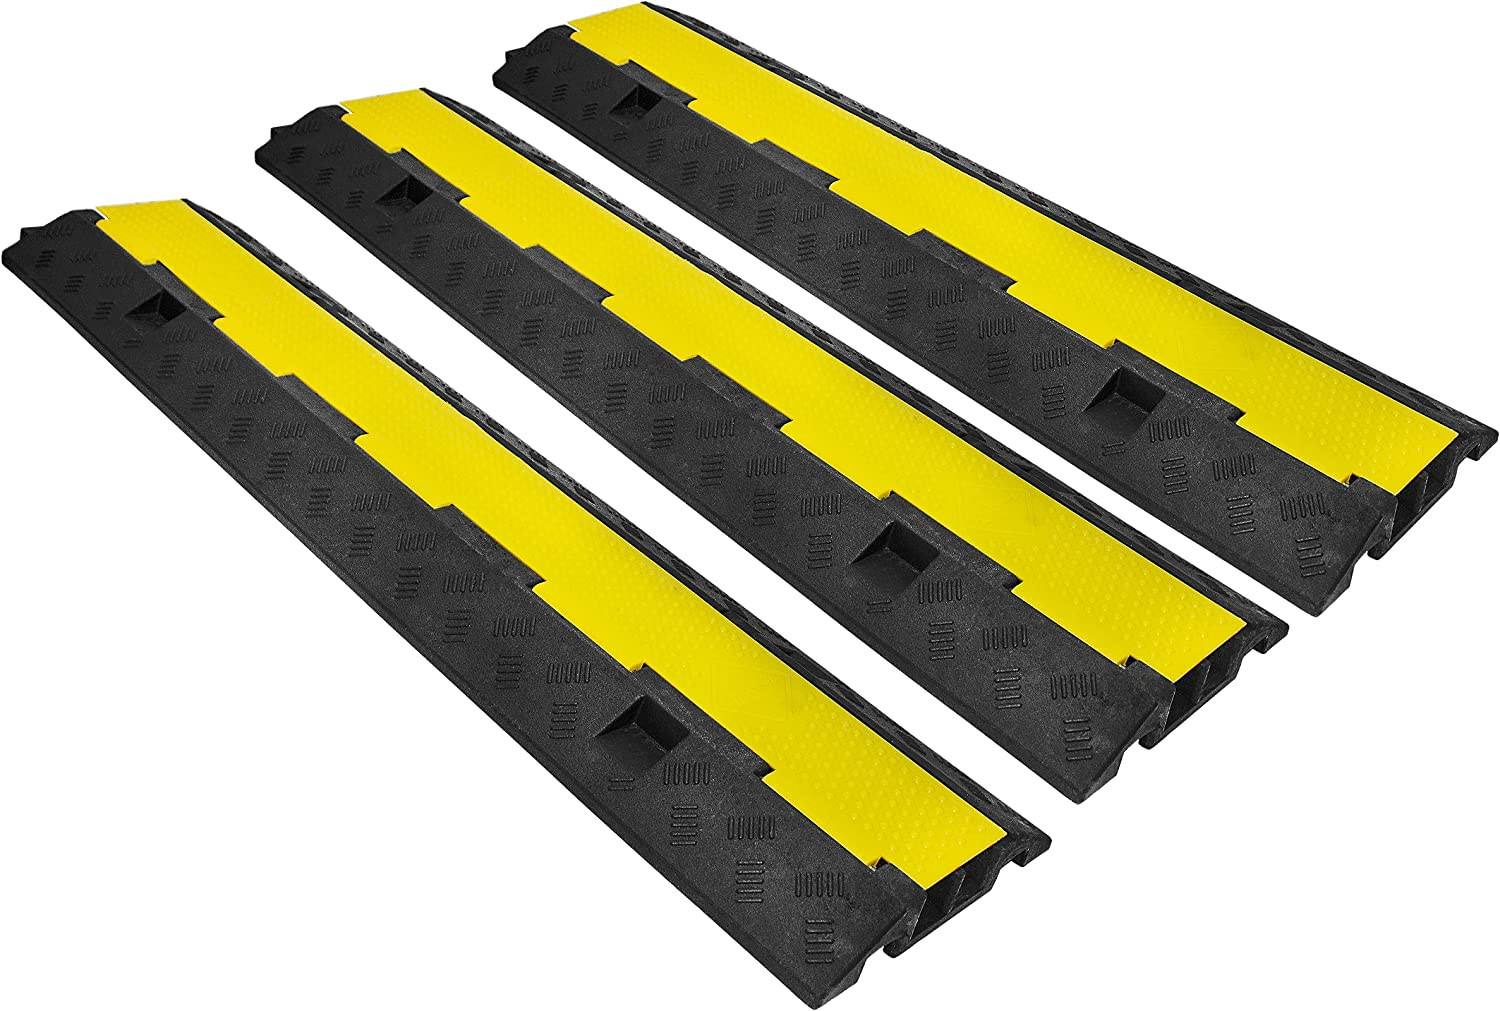 SENDUO 3 Pack of 2 Channel Protector Cable Complete Free Shipping Ramp Omaha Mall